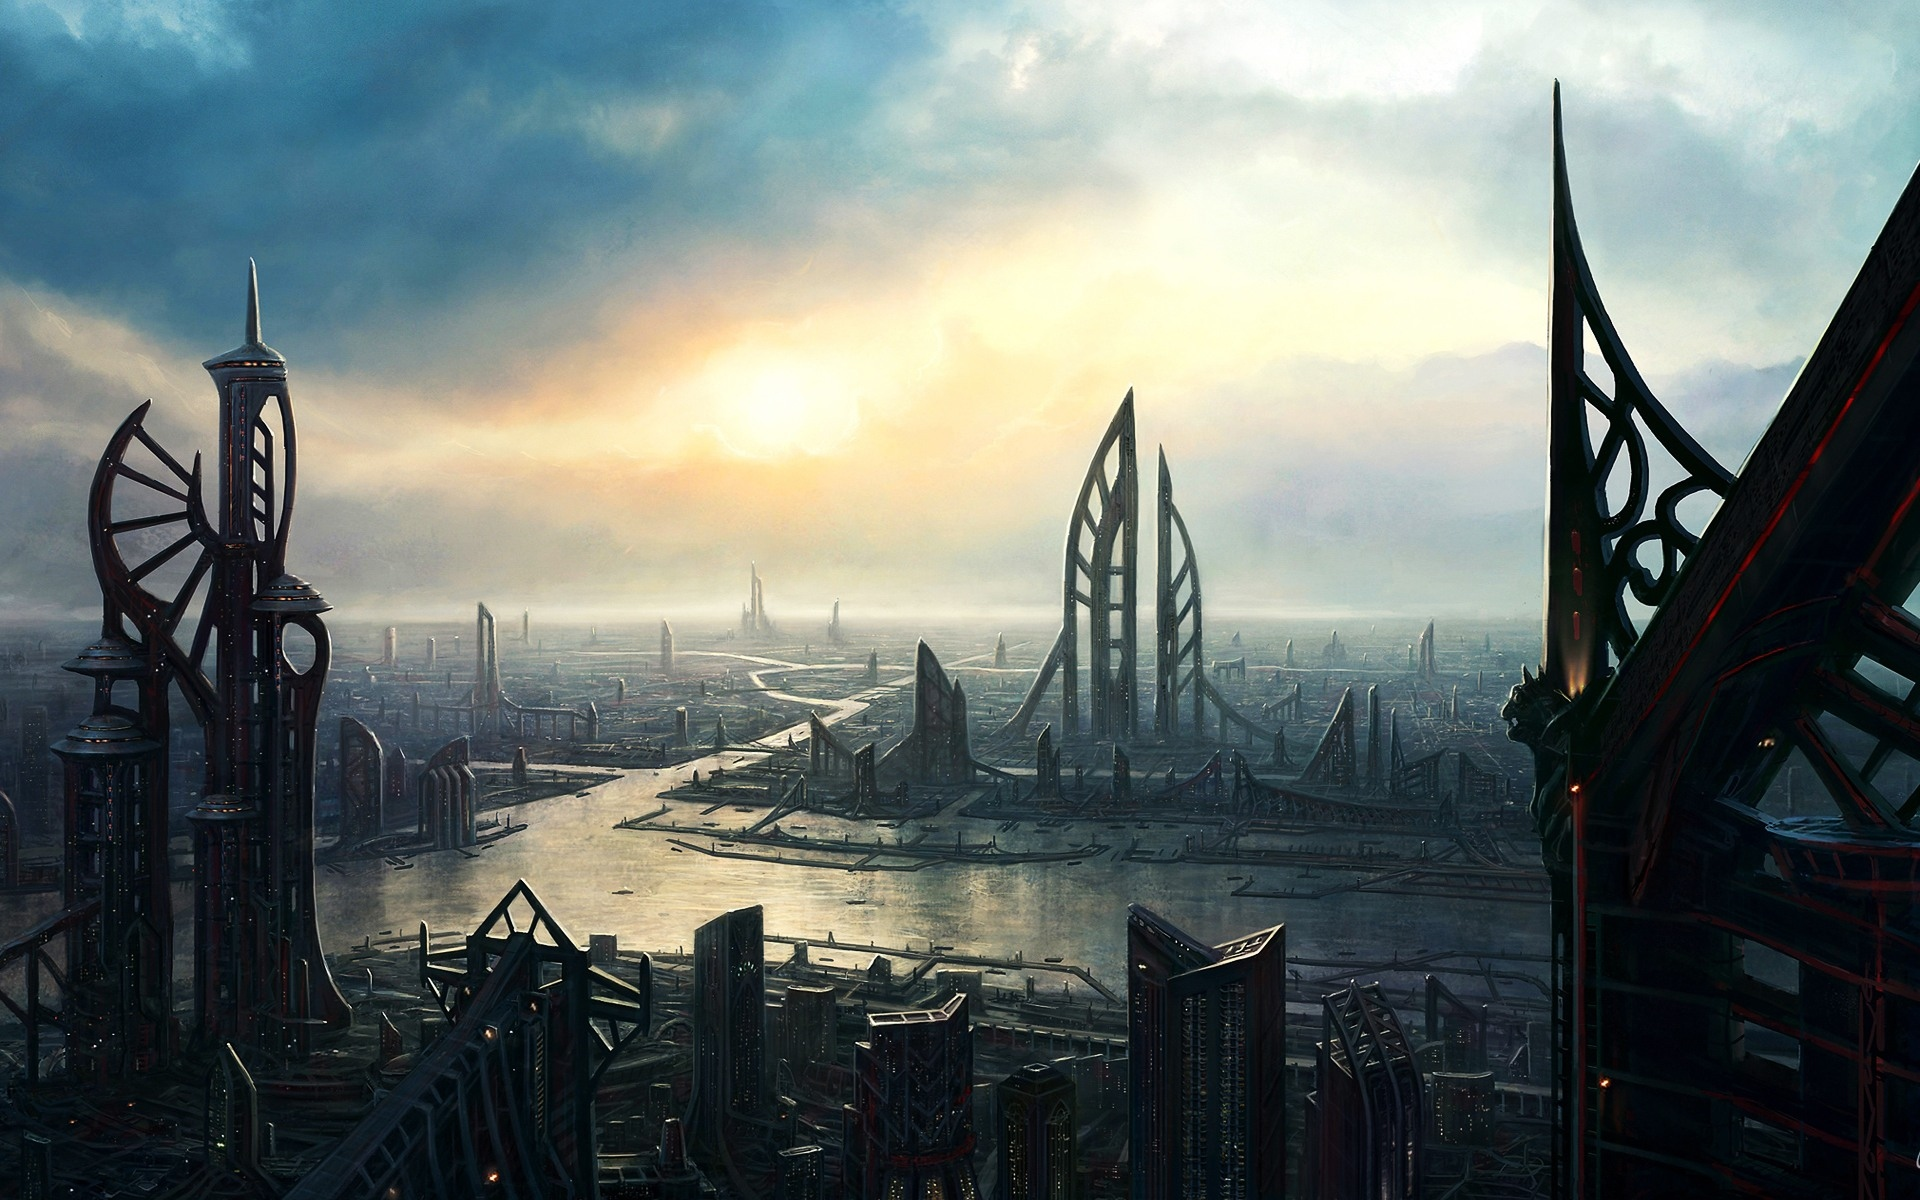 35 Hd Future Cityscape Wallpaper On Wallpapersafari